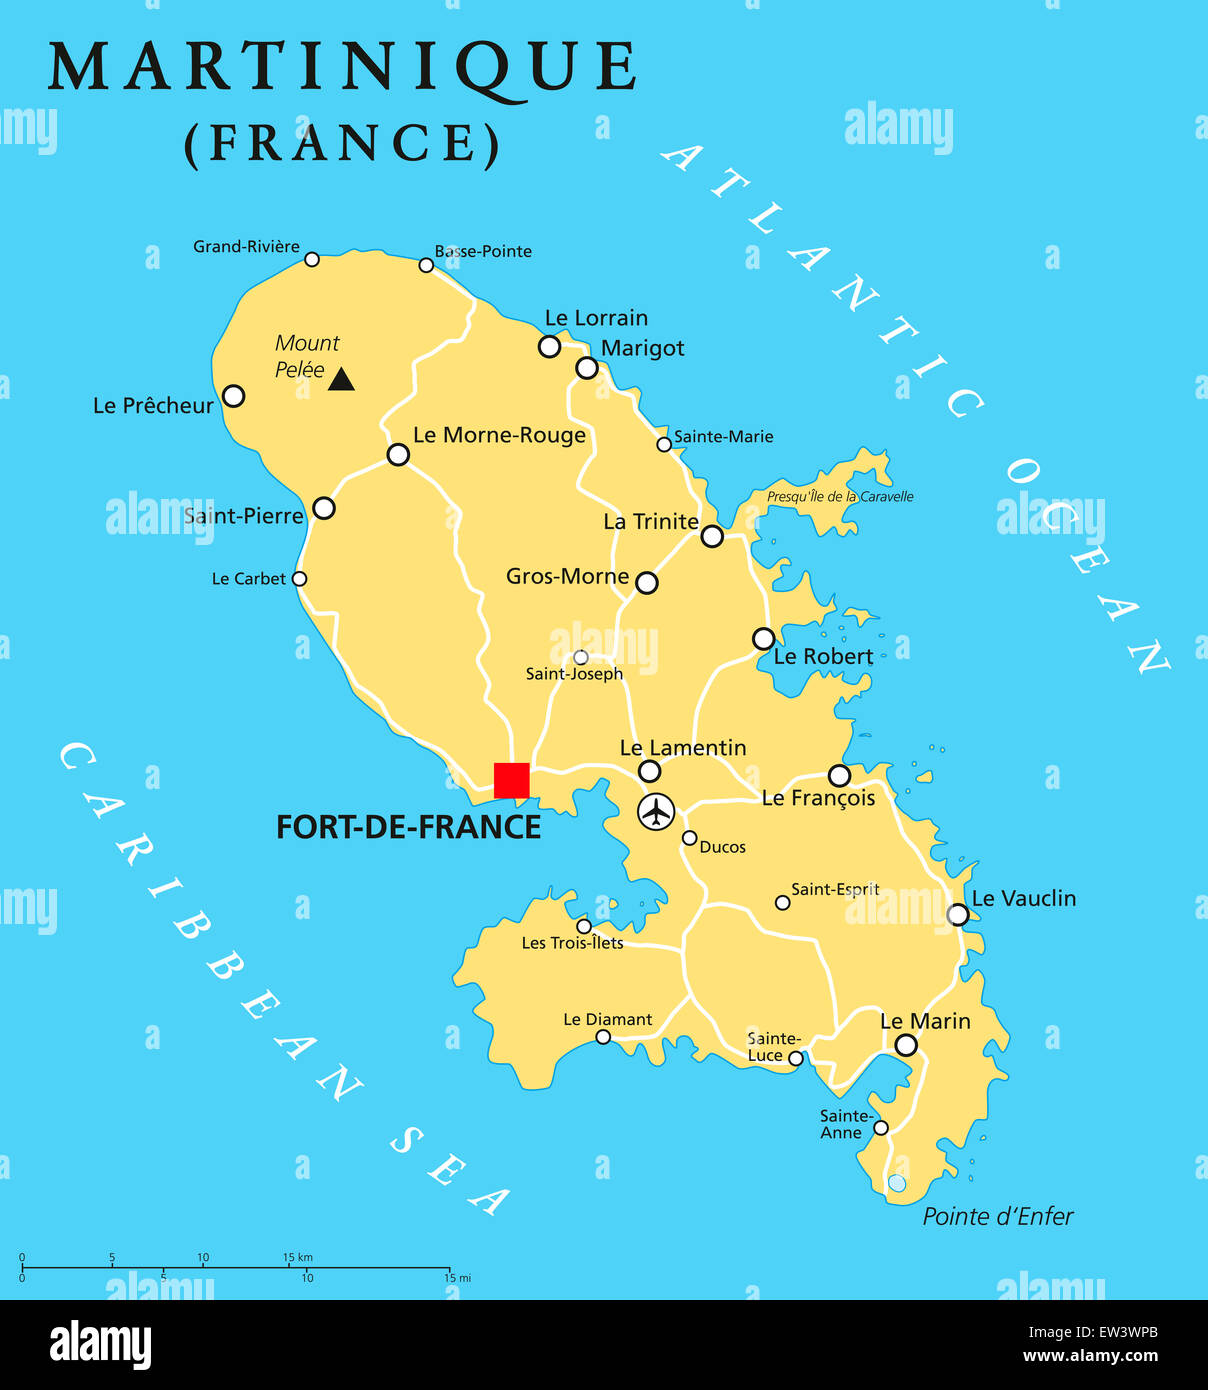 fort de france carte Martinique Map Stock Photos & Martinique Map Stock Images   Alamy